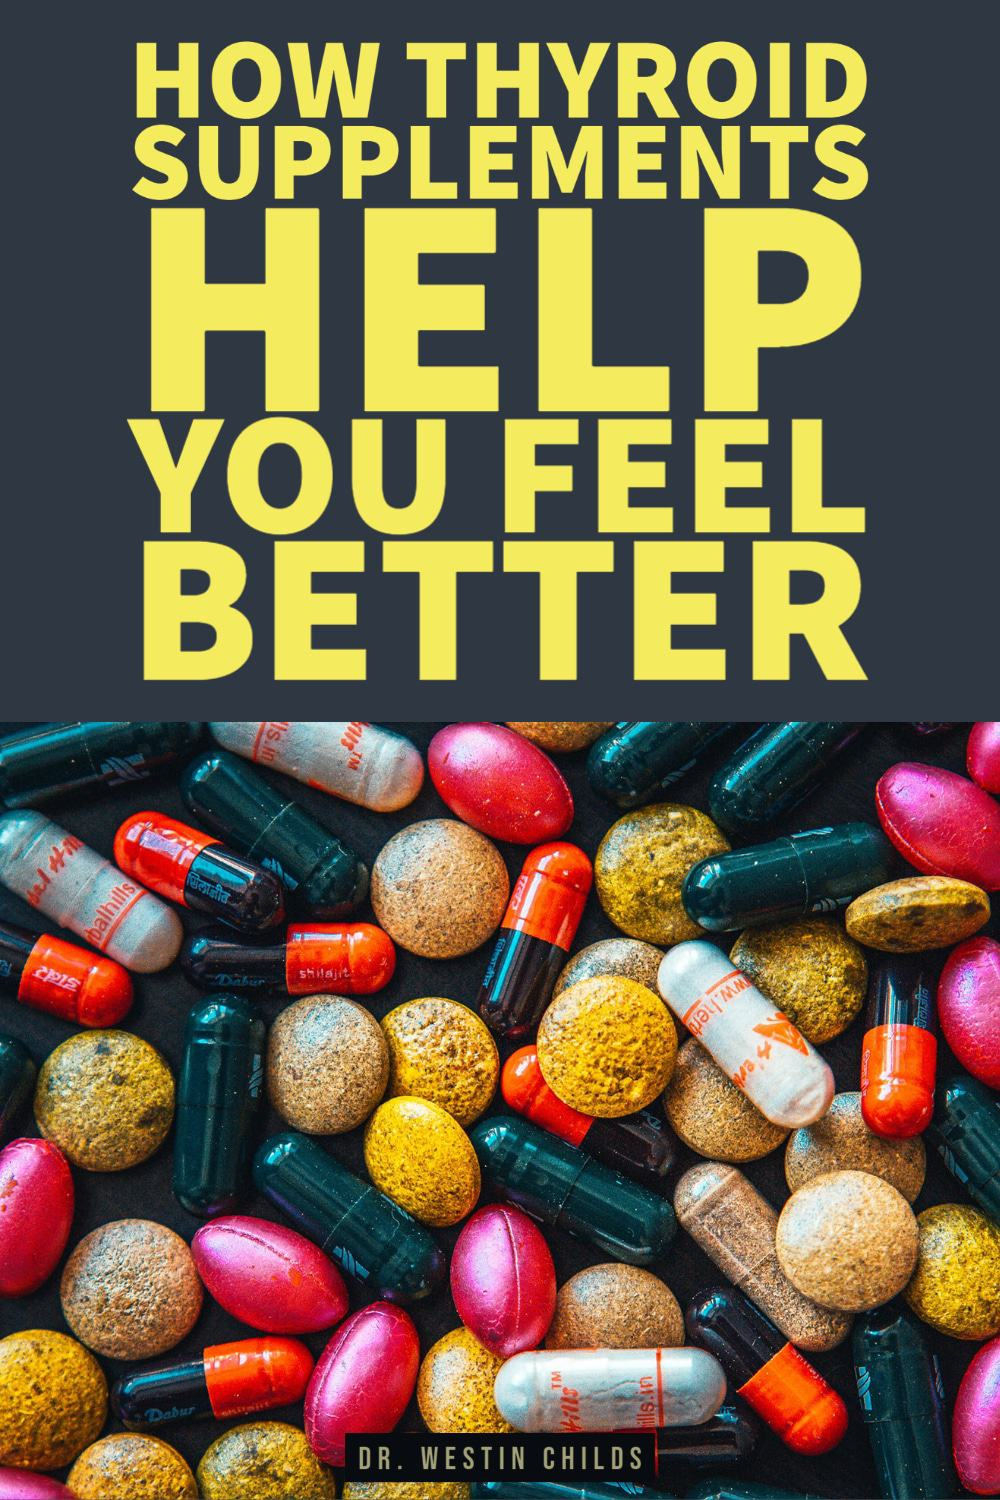 why thyroid supplements help you feel better